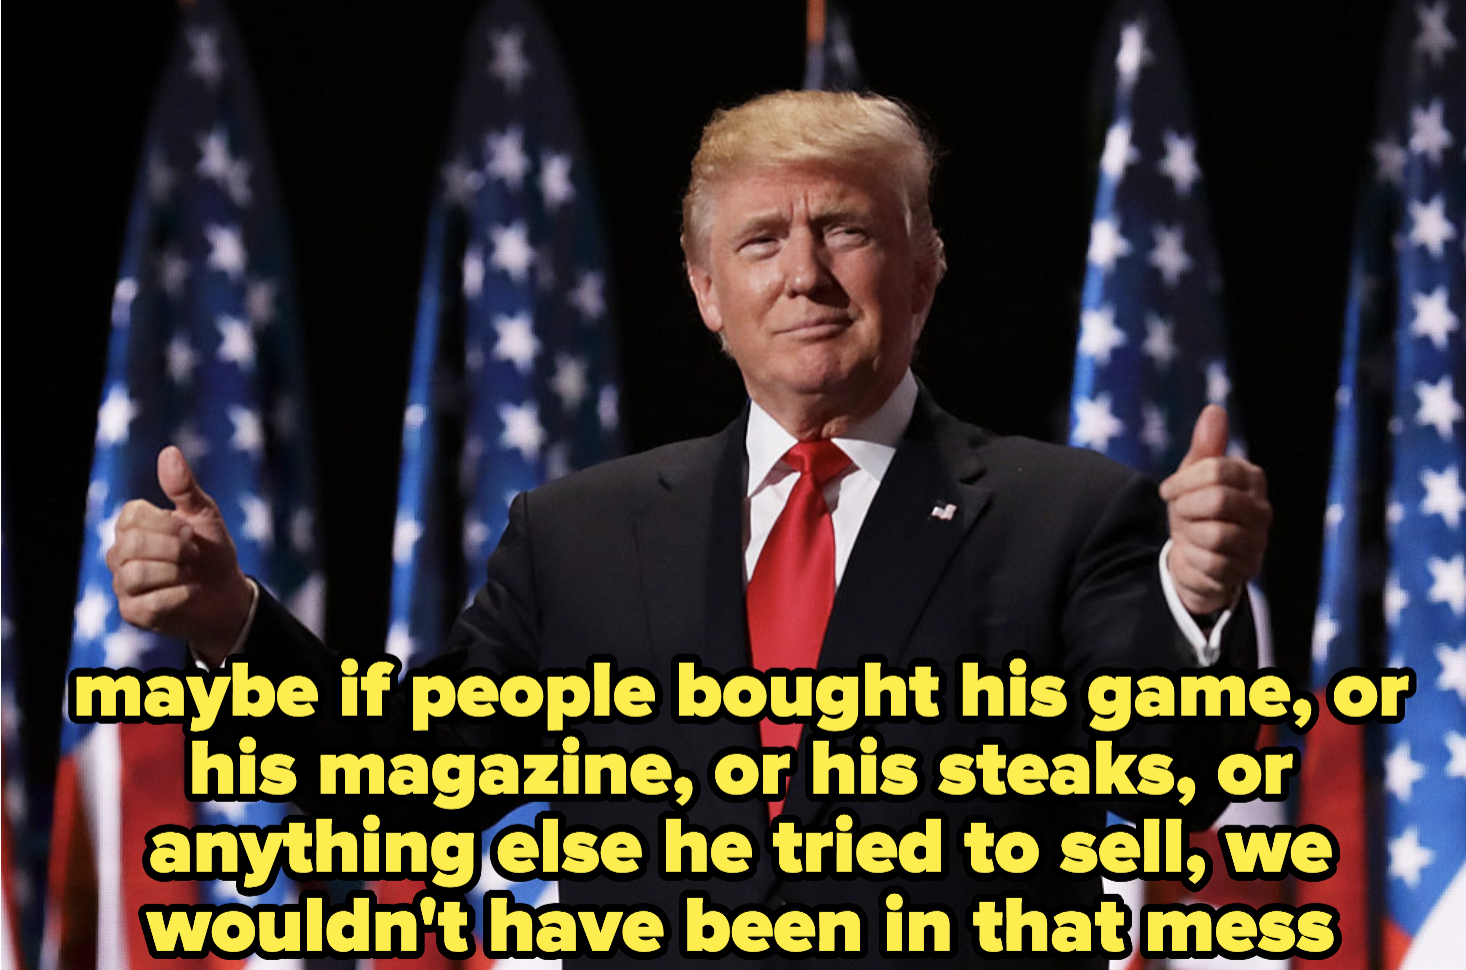 maybe if people bought his game, or his magazine, or his steaks, or anything else he tried to sell, we wouldn't have been in that mess